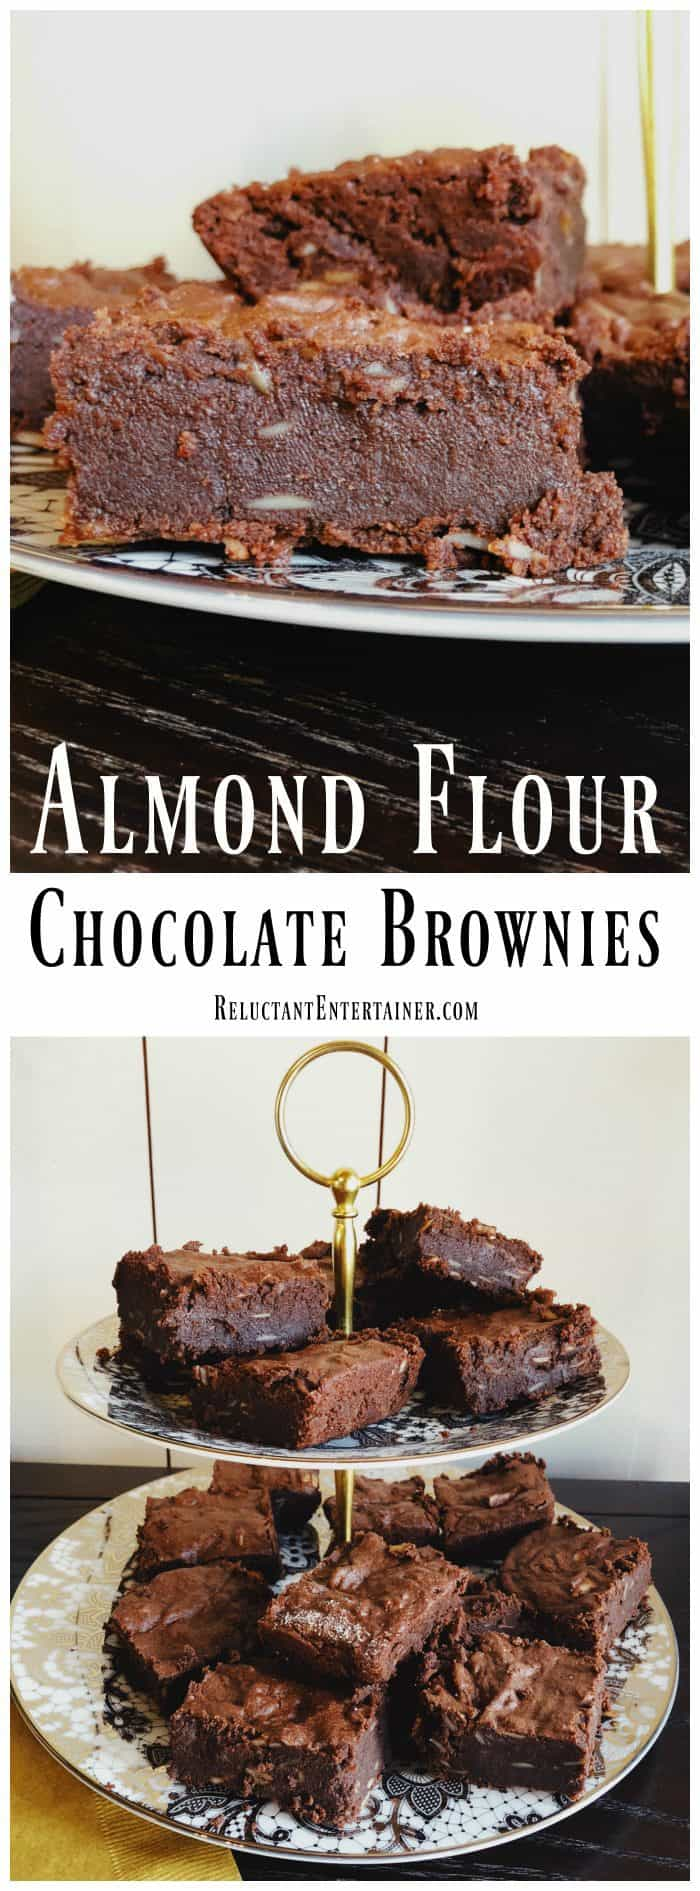 Almond Flour Chocolate Brownies